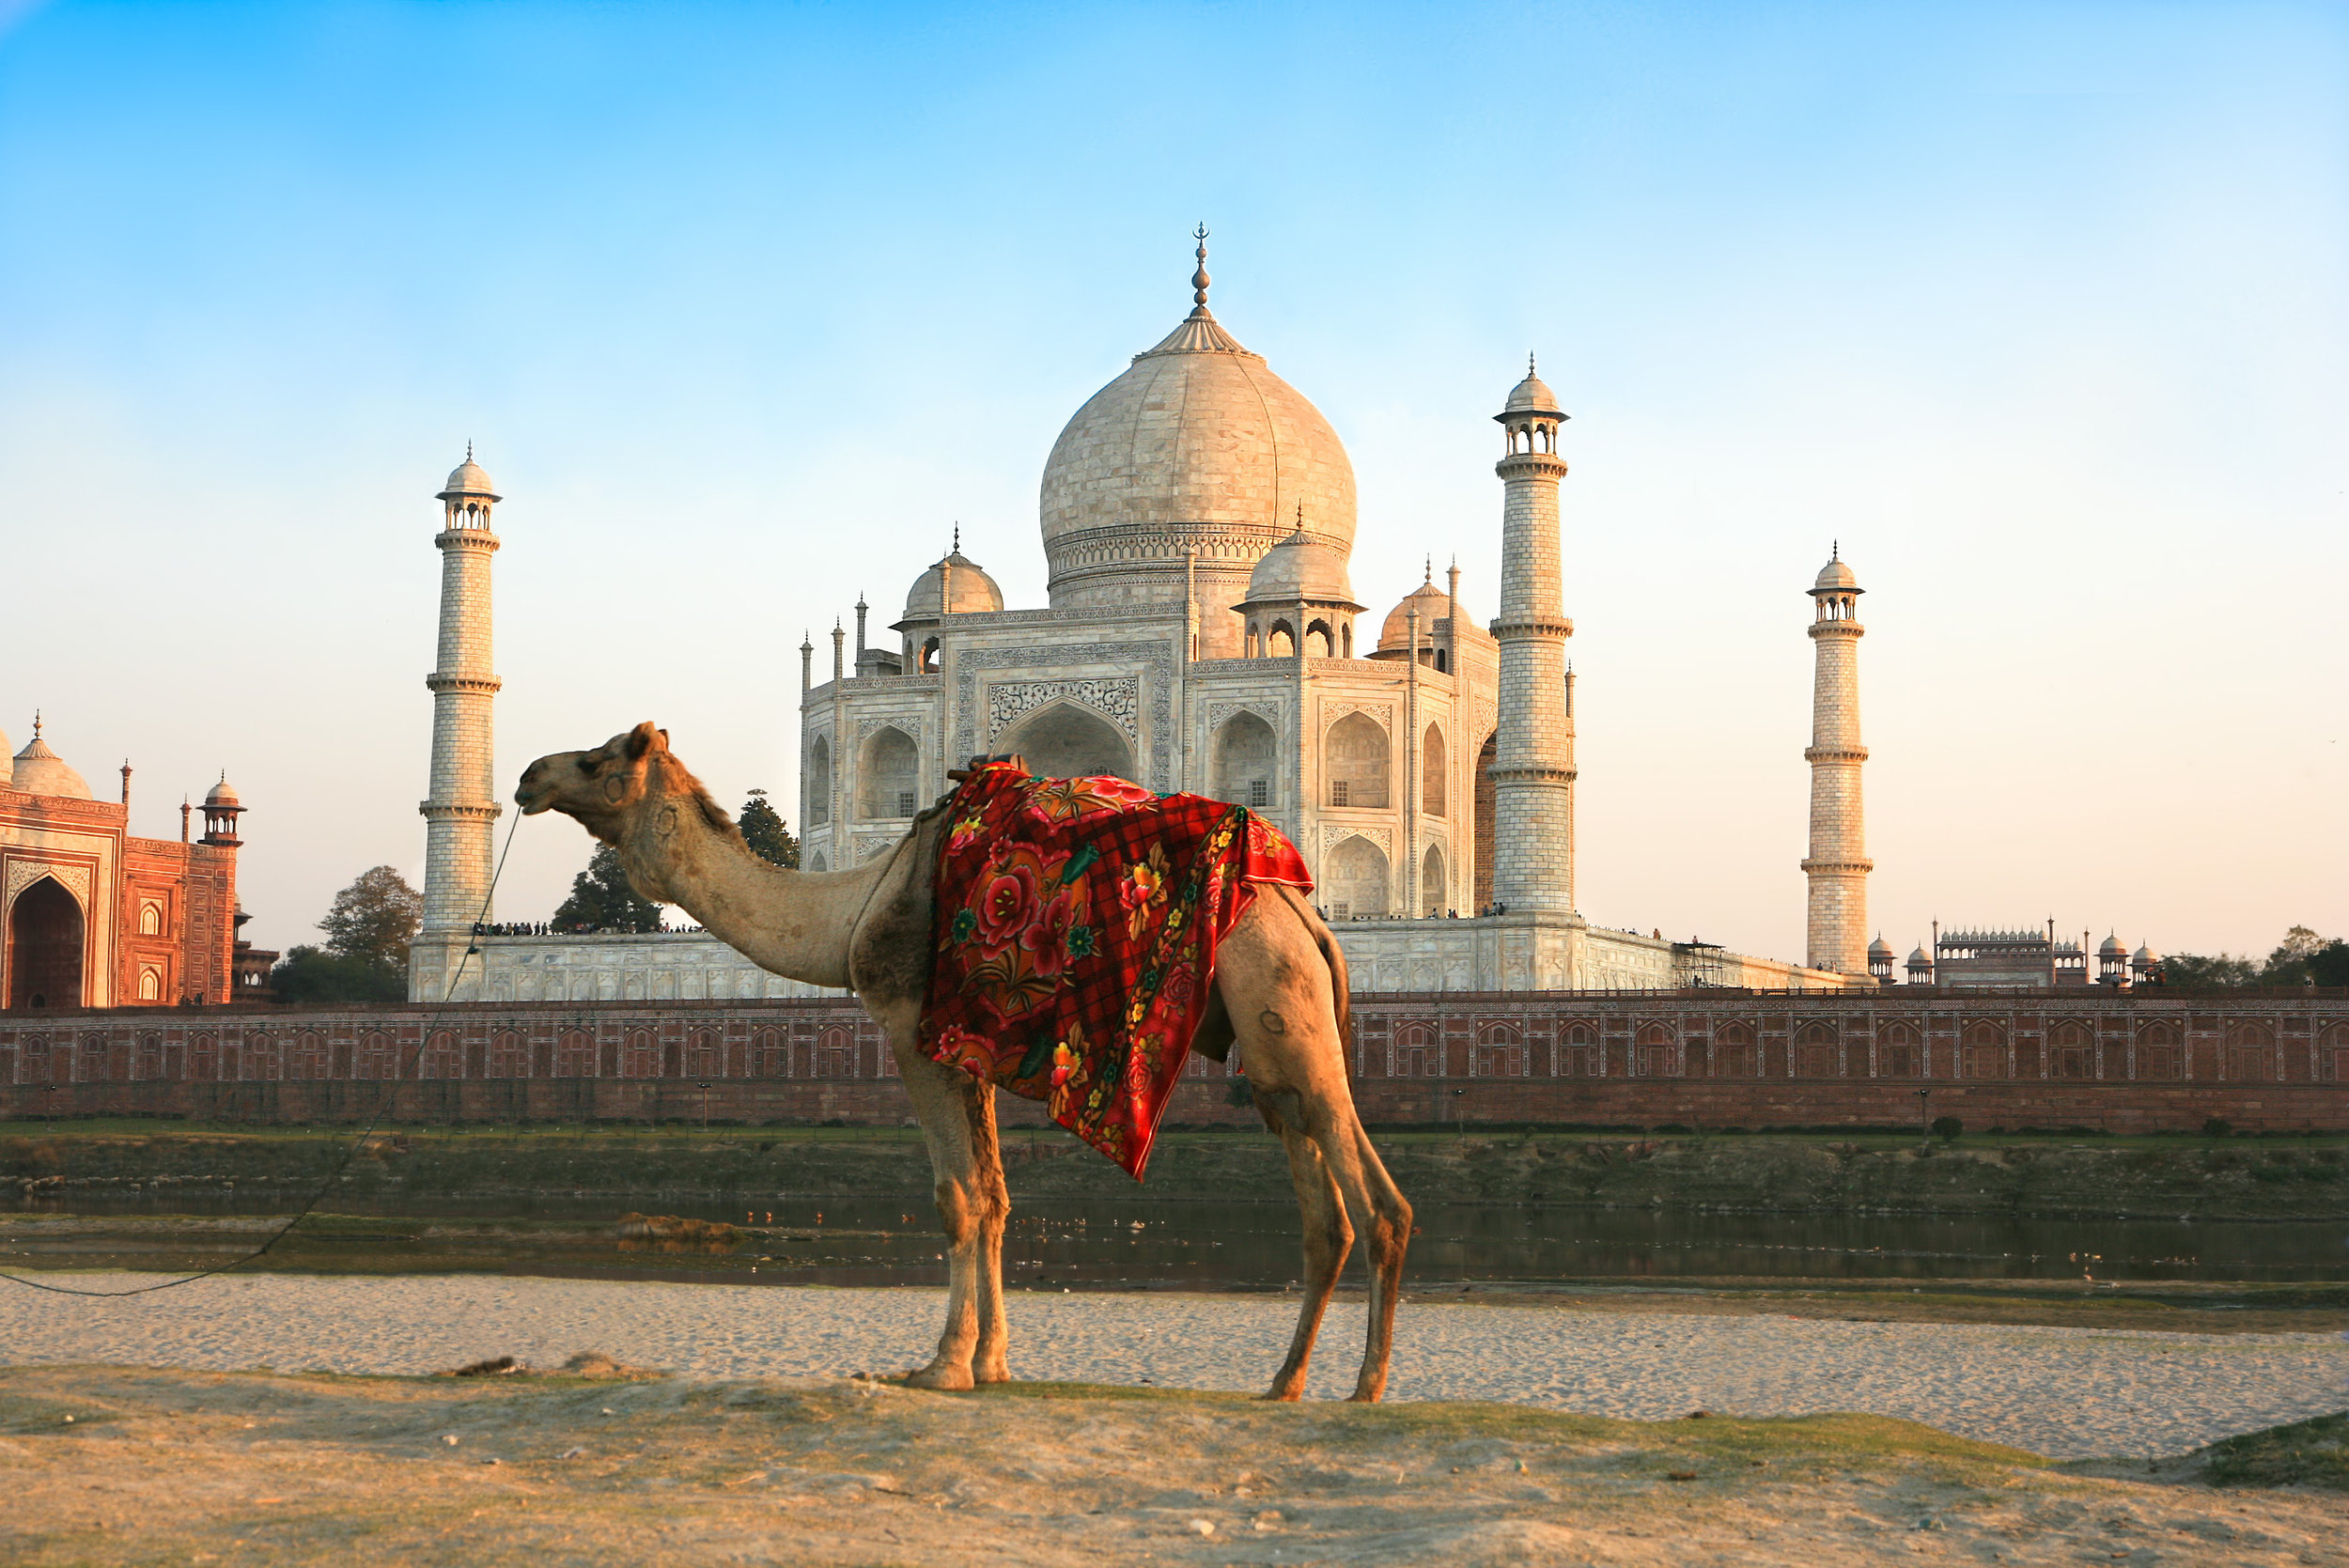 india_bigstock-Camel-in-front-of-Taj-Mahal-in-25998248.jpg